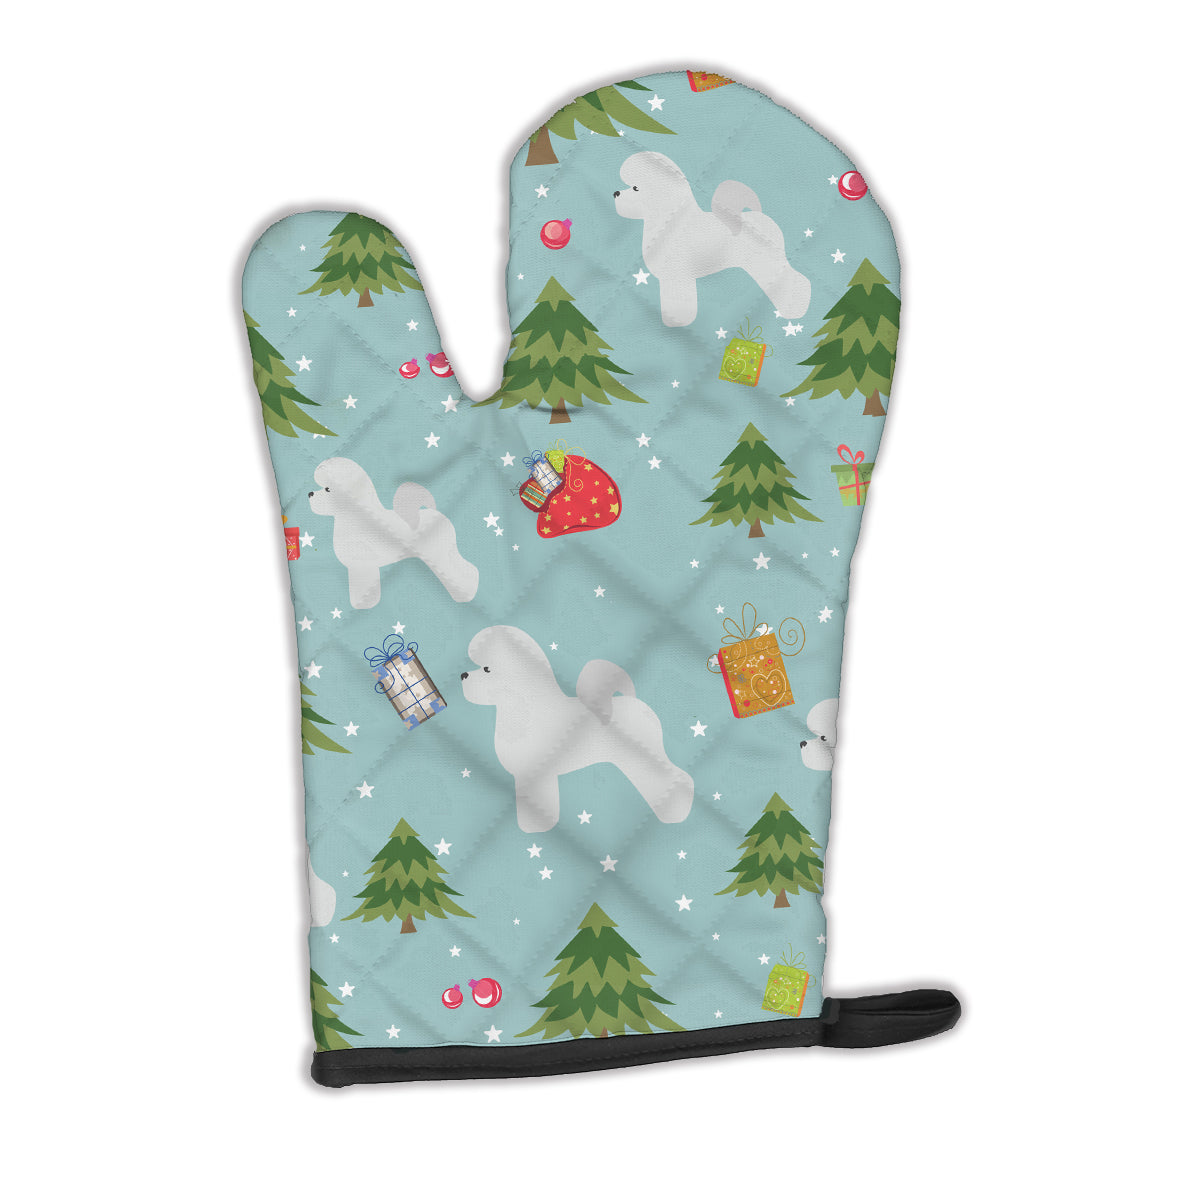 Christmas Bichon Frise Oven Mitt BB4869OVMT by Caroline's Treasures